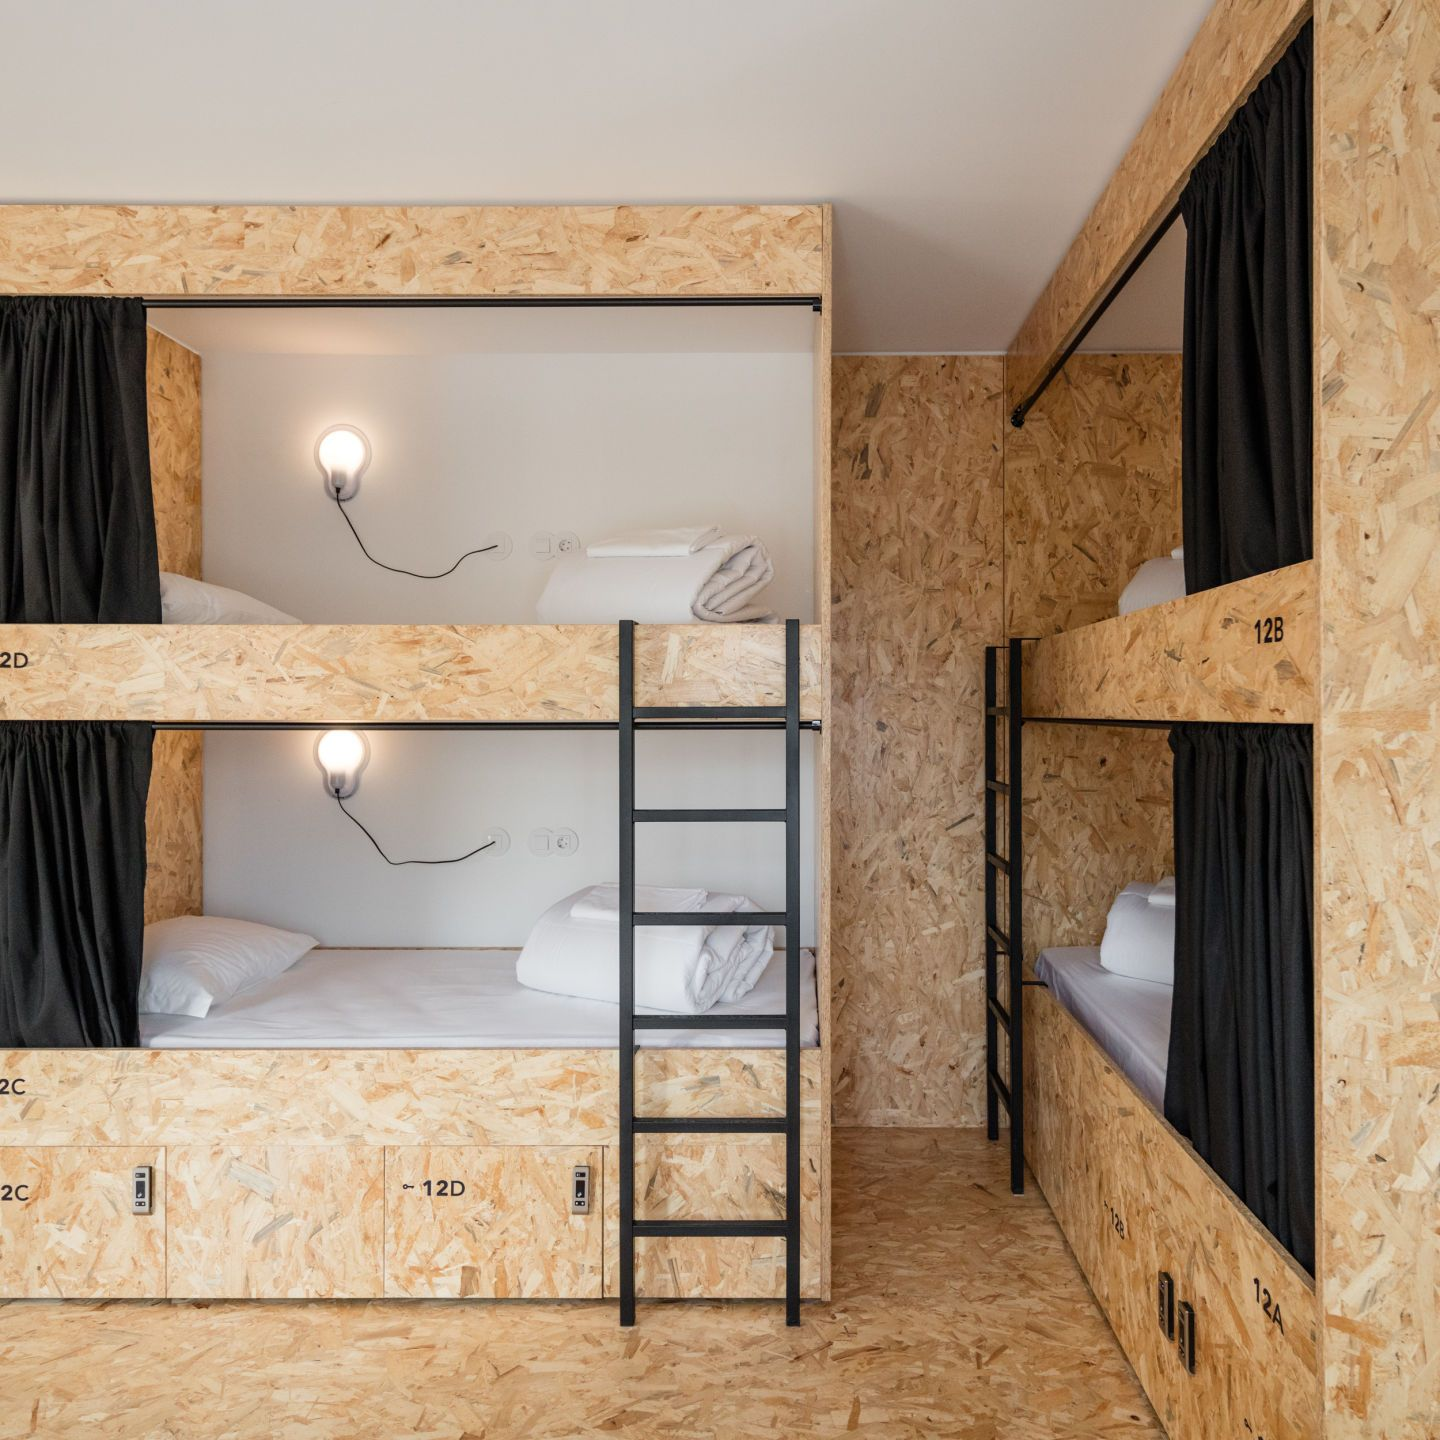 Shop Redo Very Organic Industrial Option Please Click To Link It S A Youth Hostel That Uses The Same Material